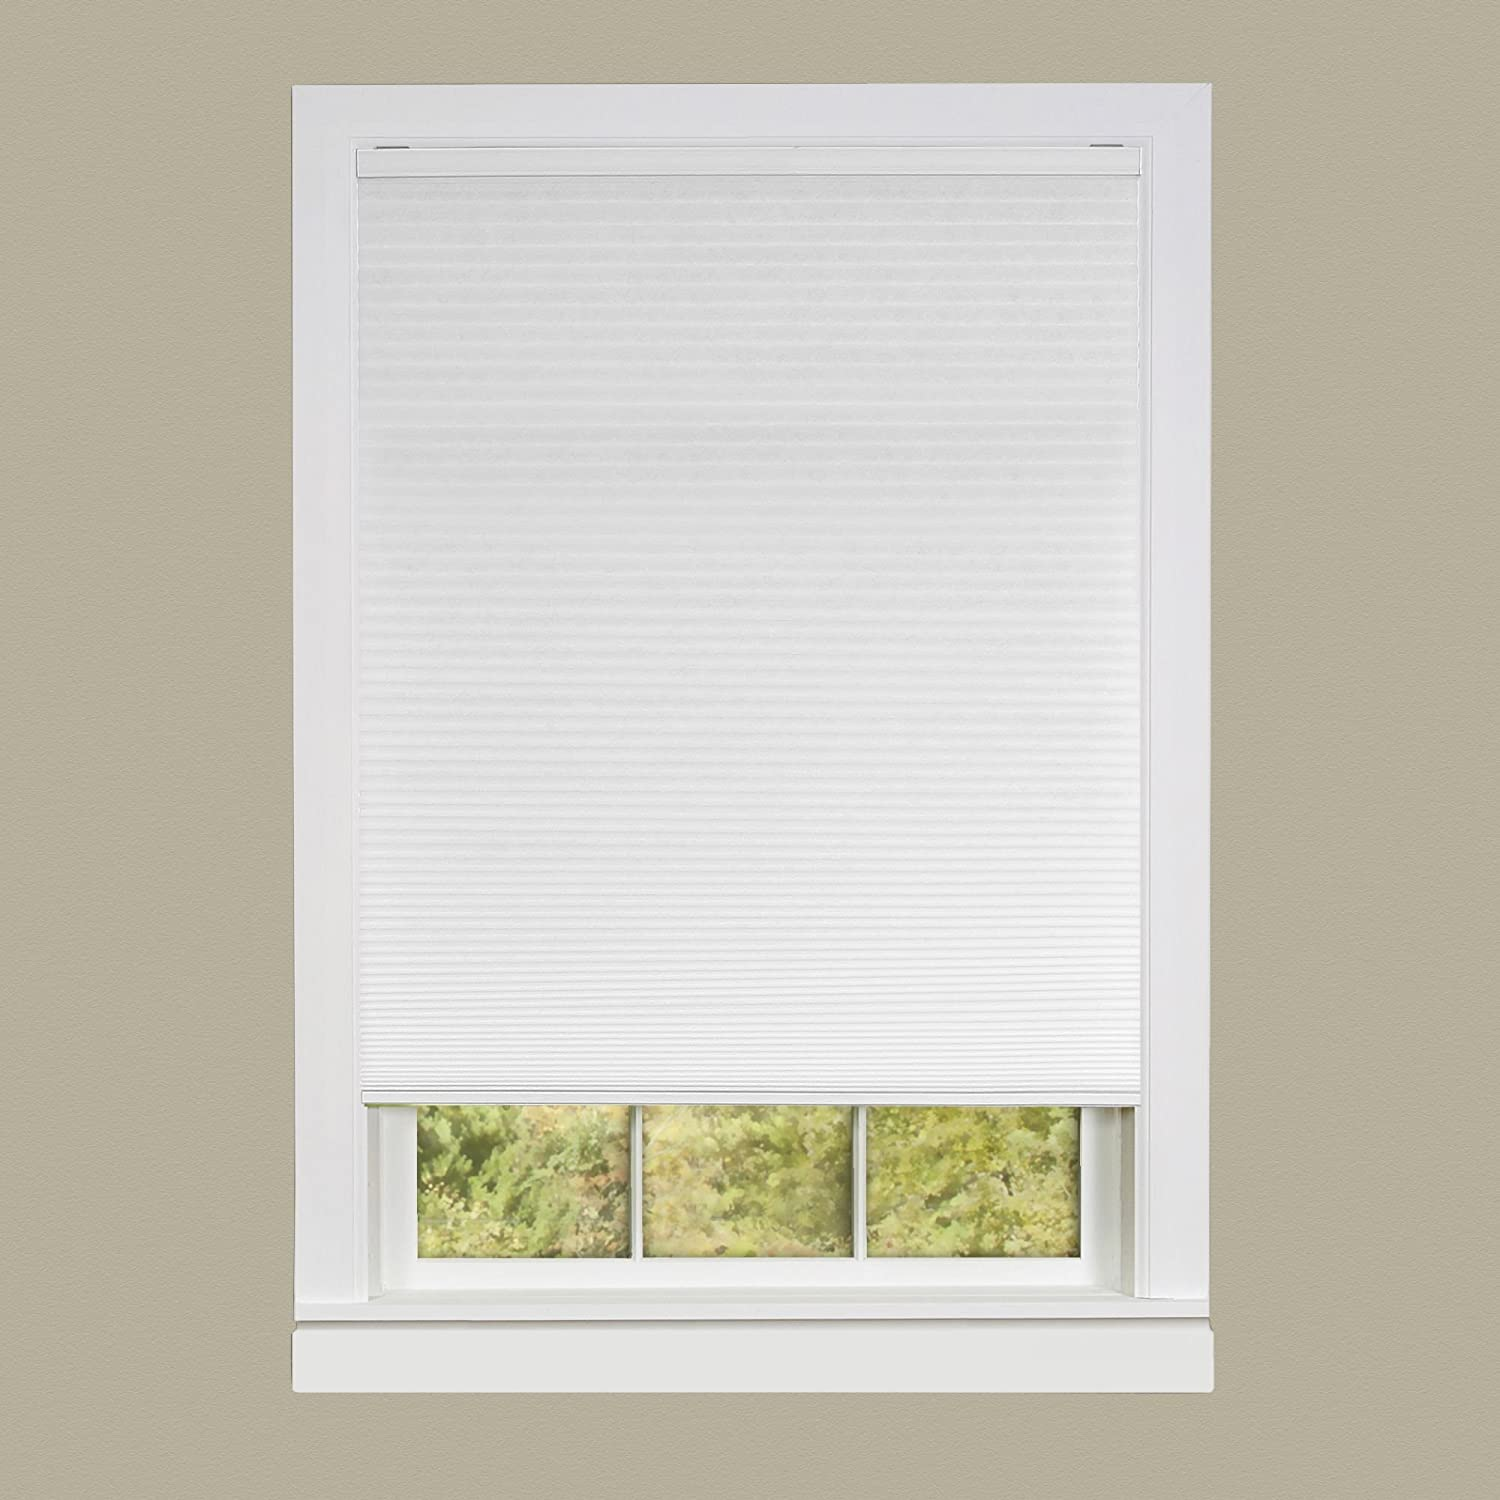 Achim Home Furnishings Honeycomb Pleated Cordless Window Shade, 23 by 64-Inch, Alabaster CSCO23AL06